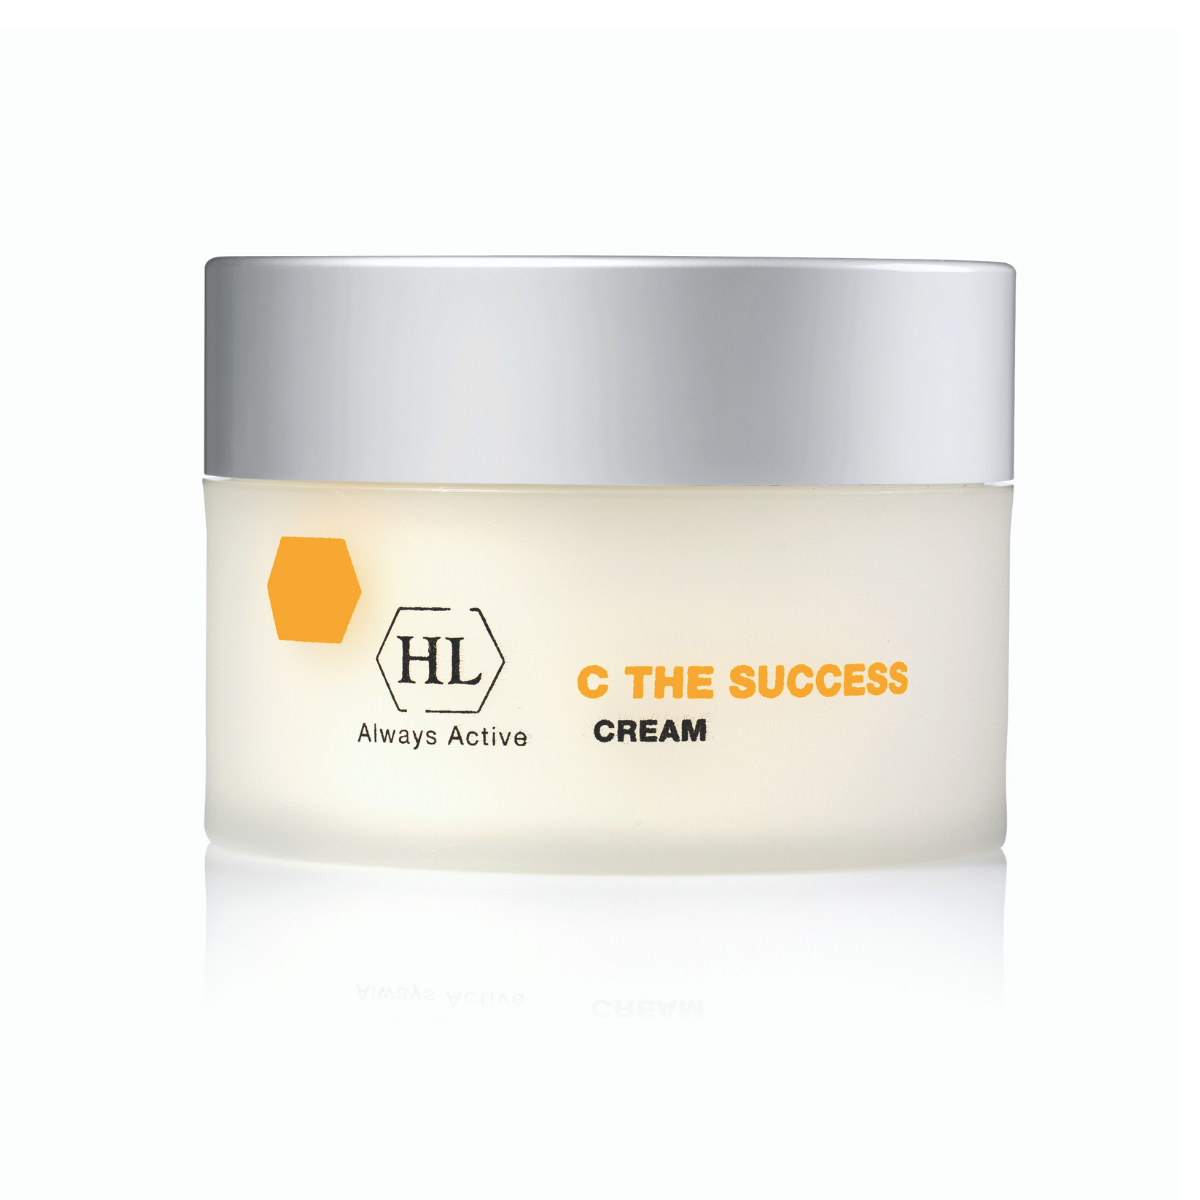 Holy Land Day Cream | C THE SUCCES